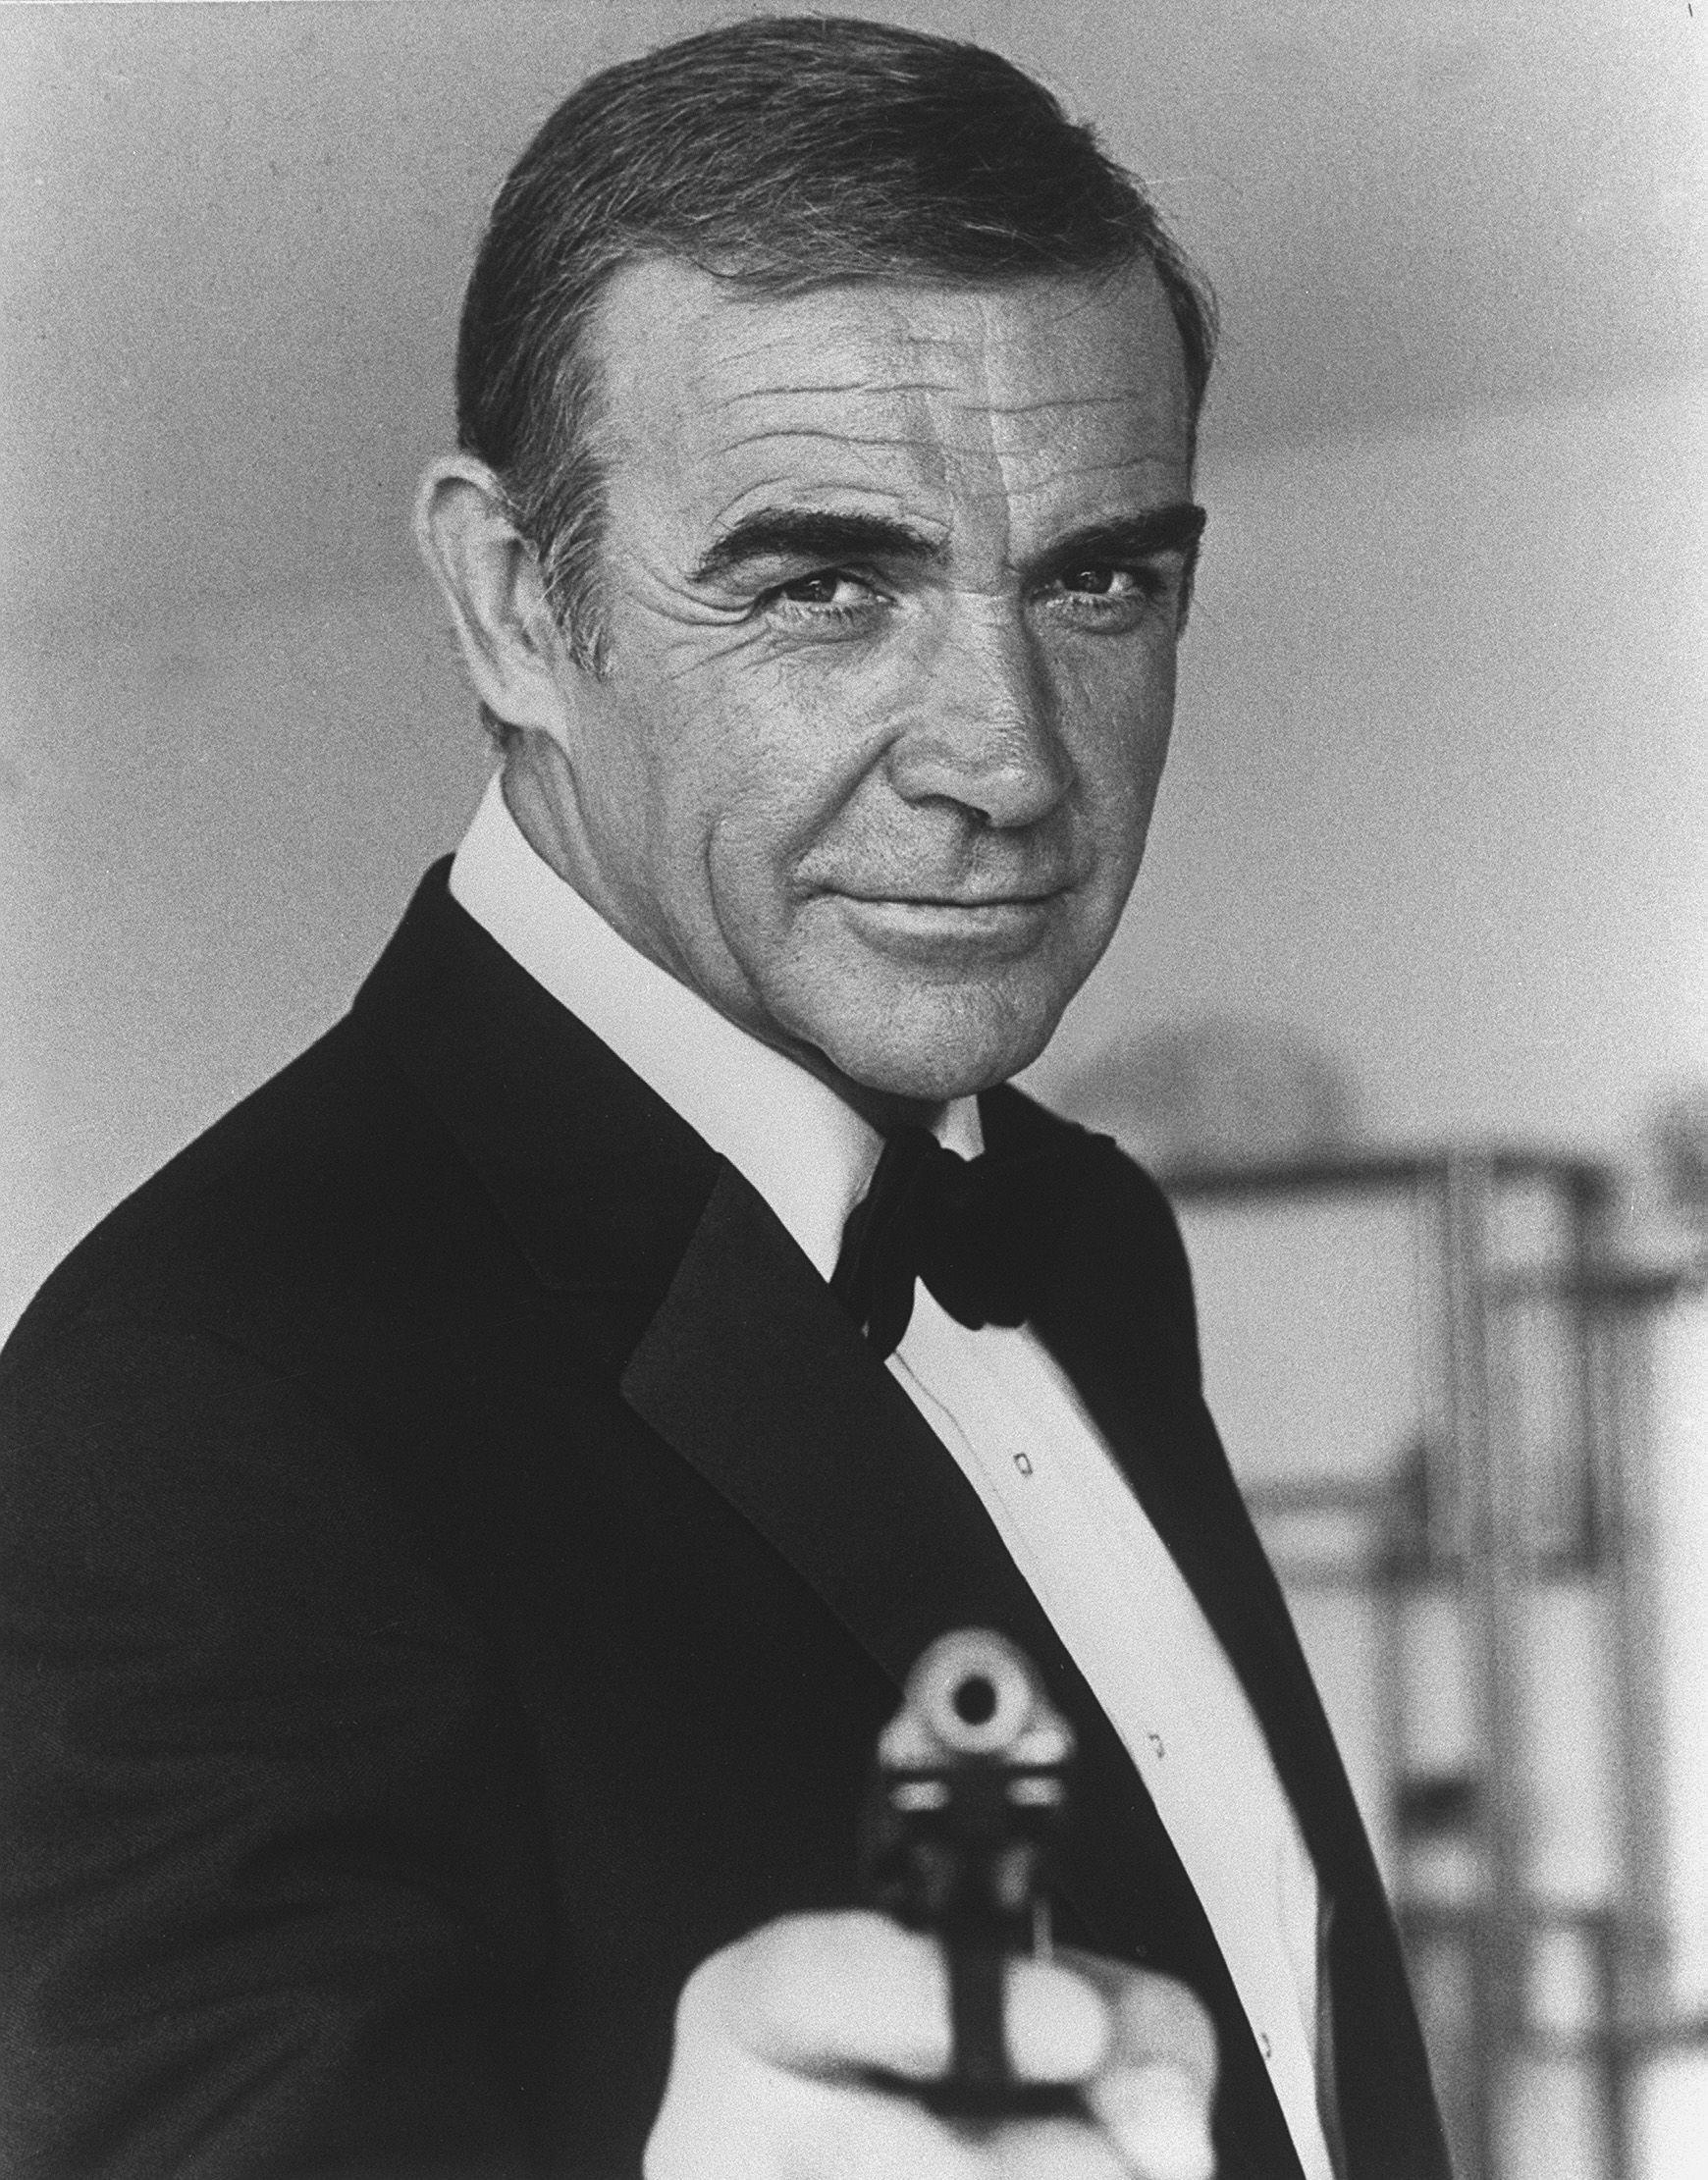 Sean Connery photo 5 of 67 pics, wallpaper - photo #57729 - ThePlace2